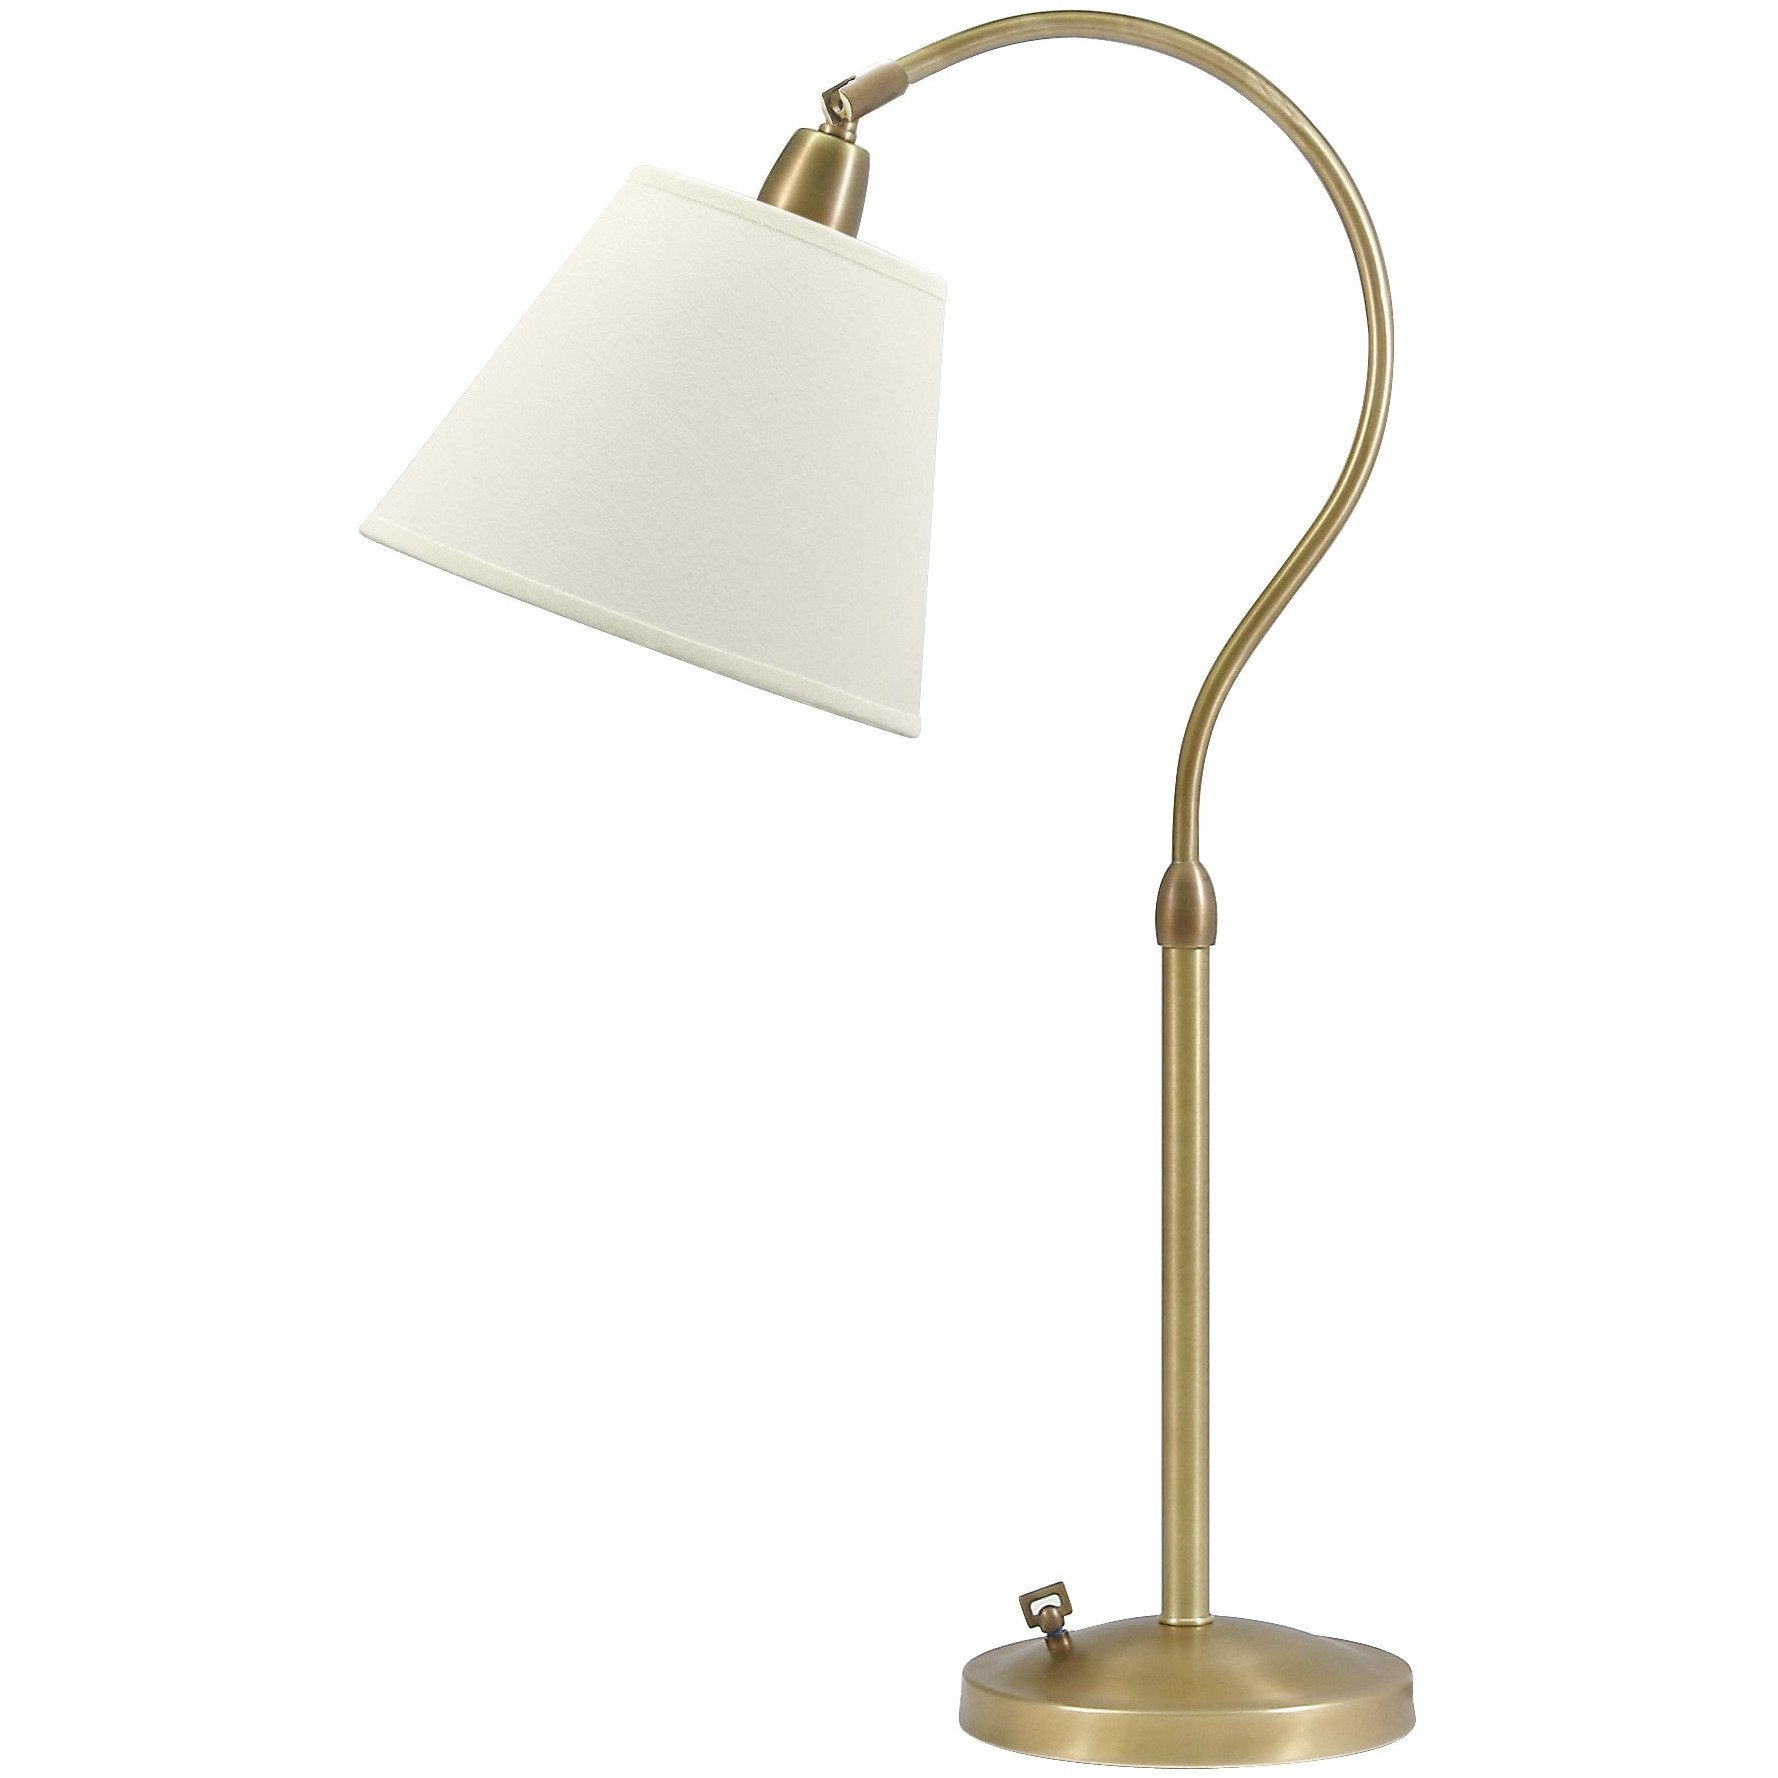 House Of Troy Table Lamps Hyde Park Table Lamp with Full Range Dimmer by House Of Troy HP750-WB-WL